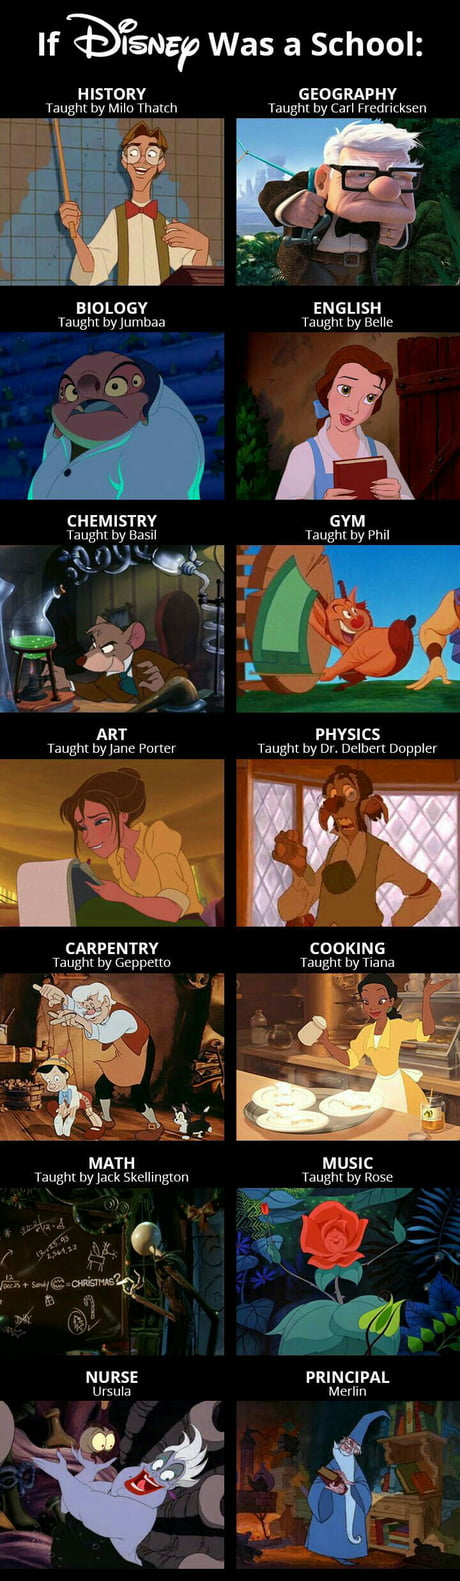 If Disney was a school... I totally would to go there! (sorry no potato)